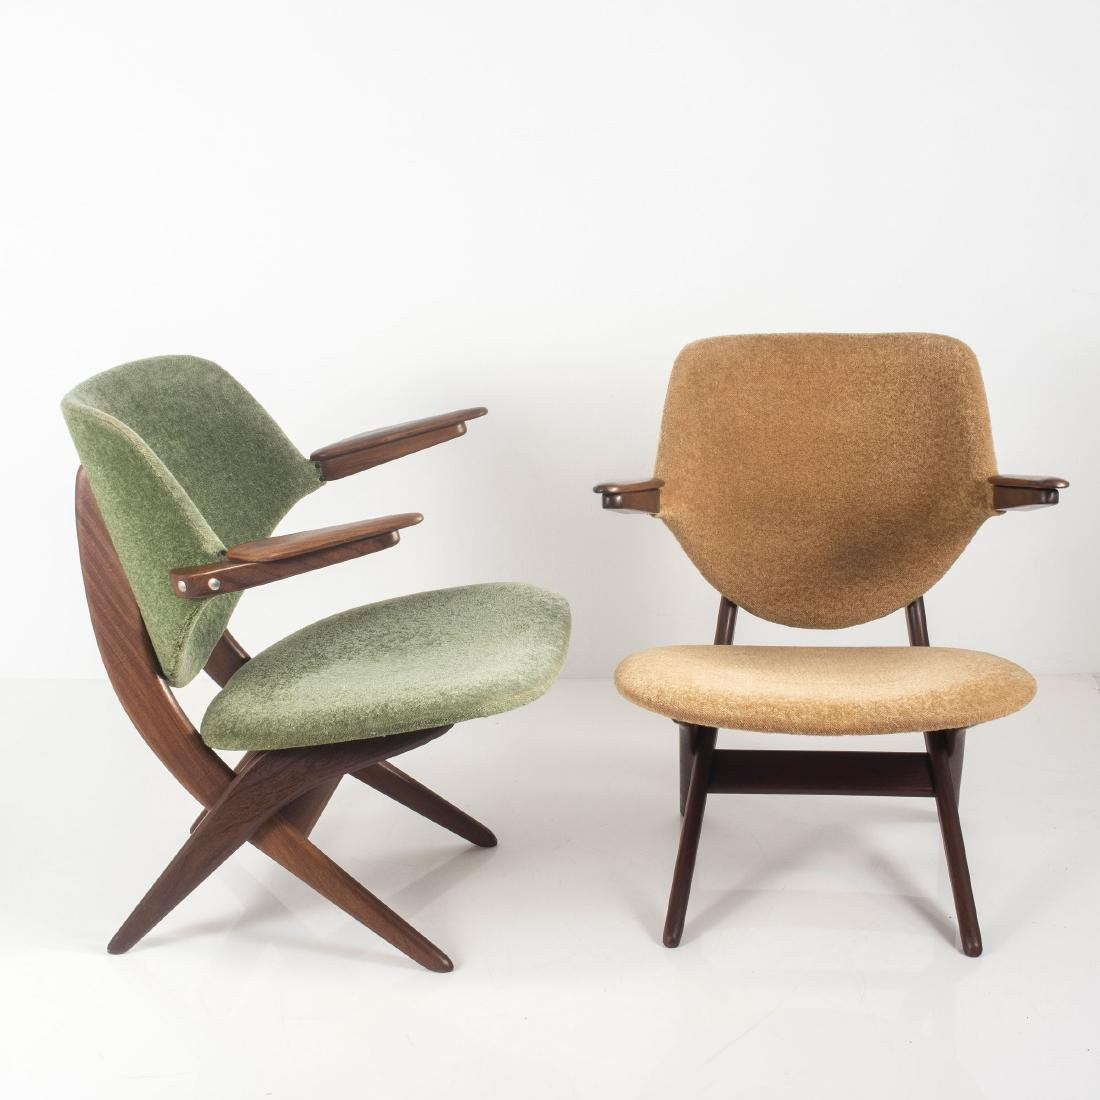 Two 'Pelican' easy chairs, c. 1955 - 7